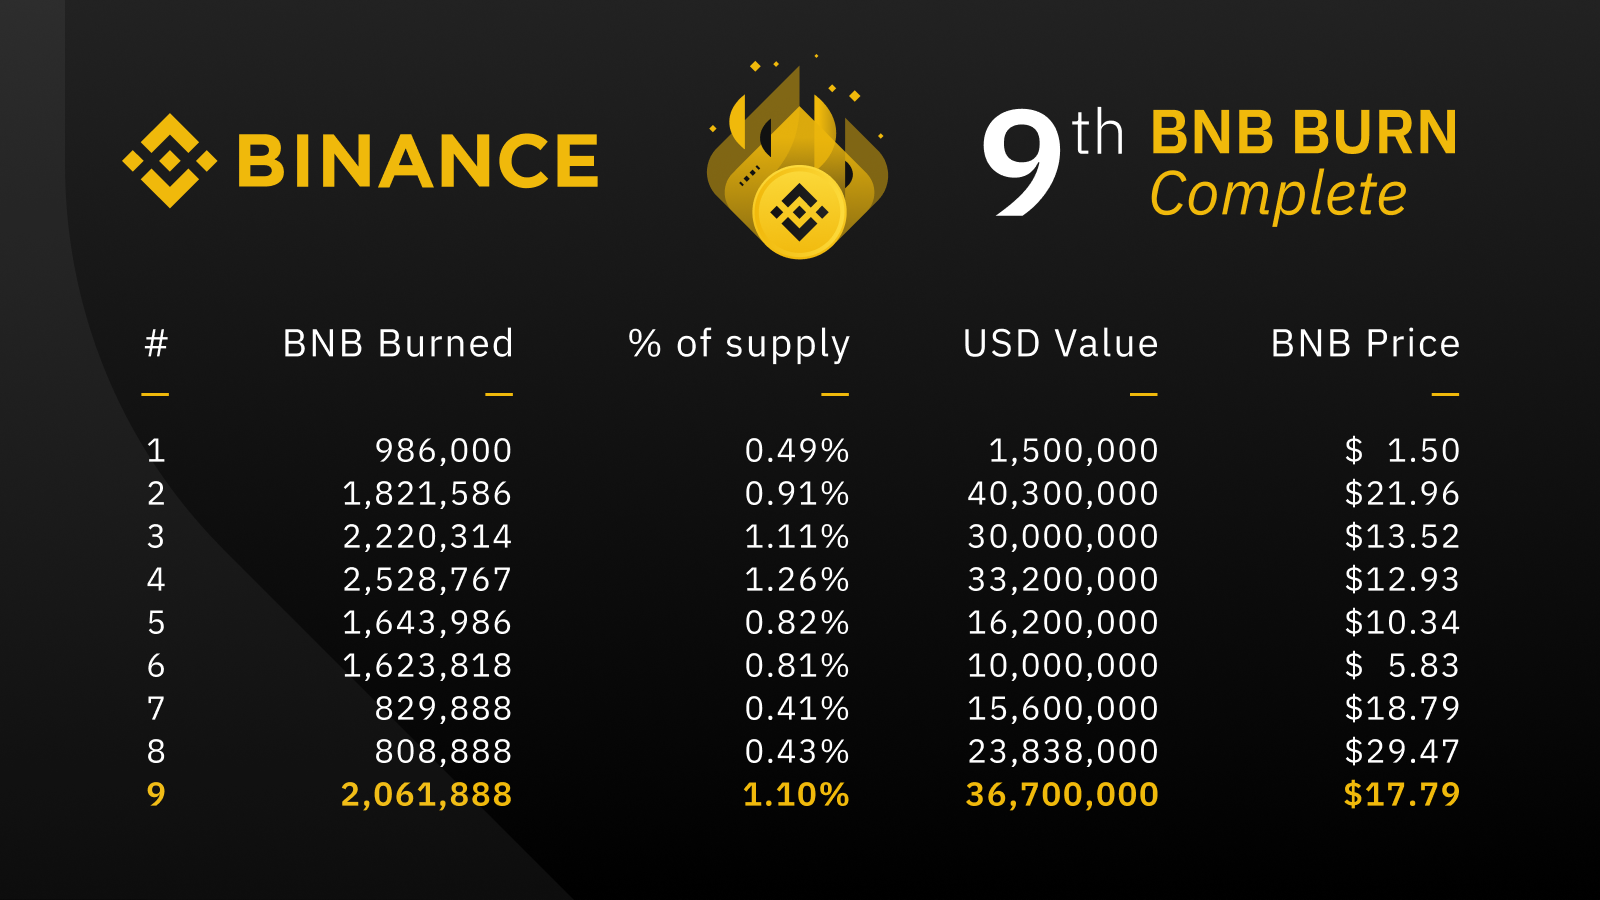 Binance Coin burn data